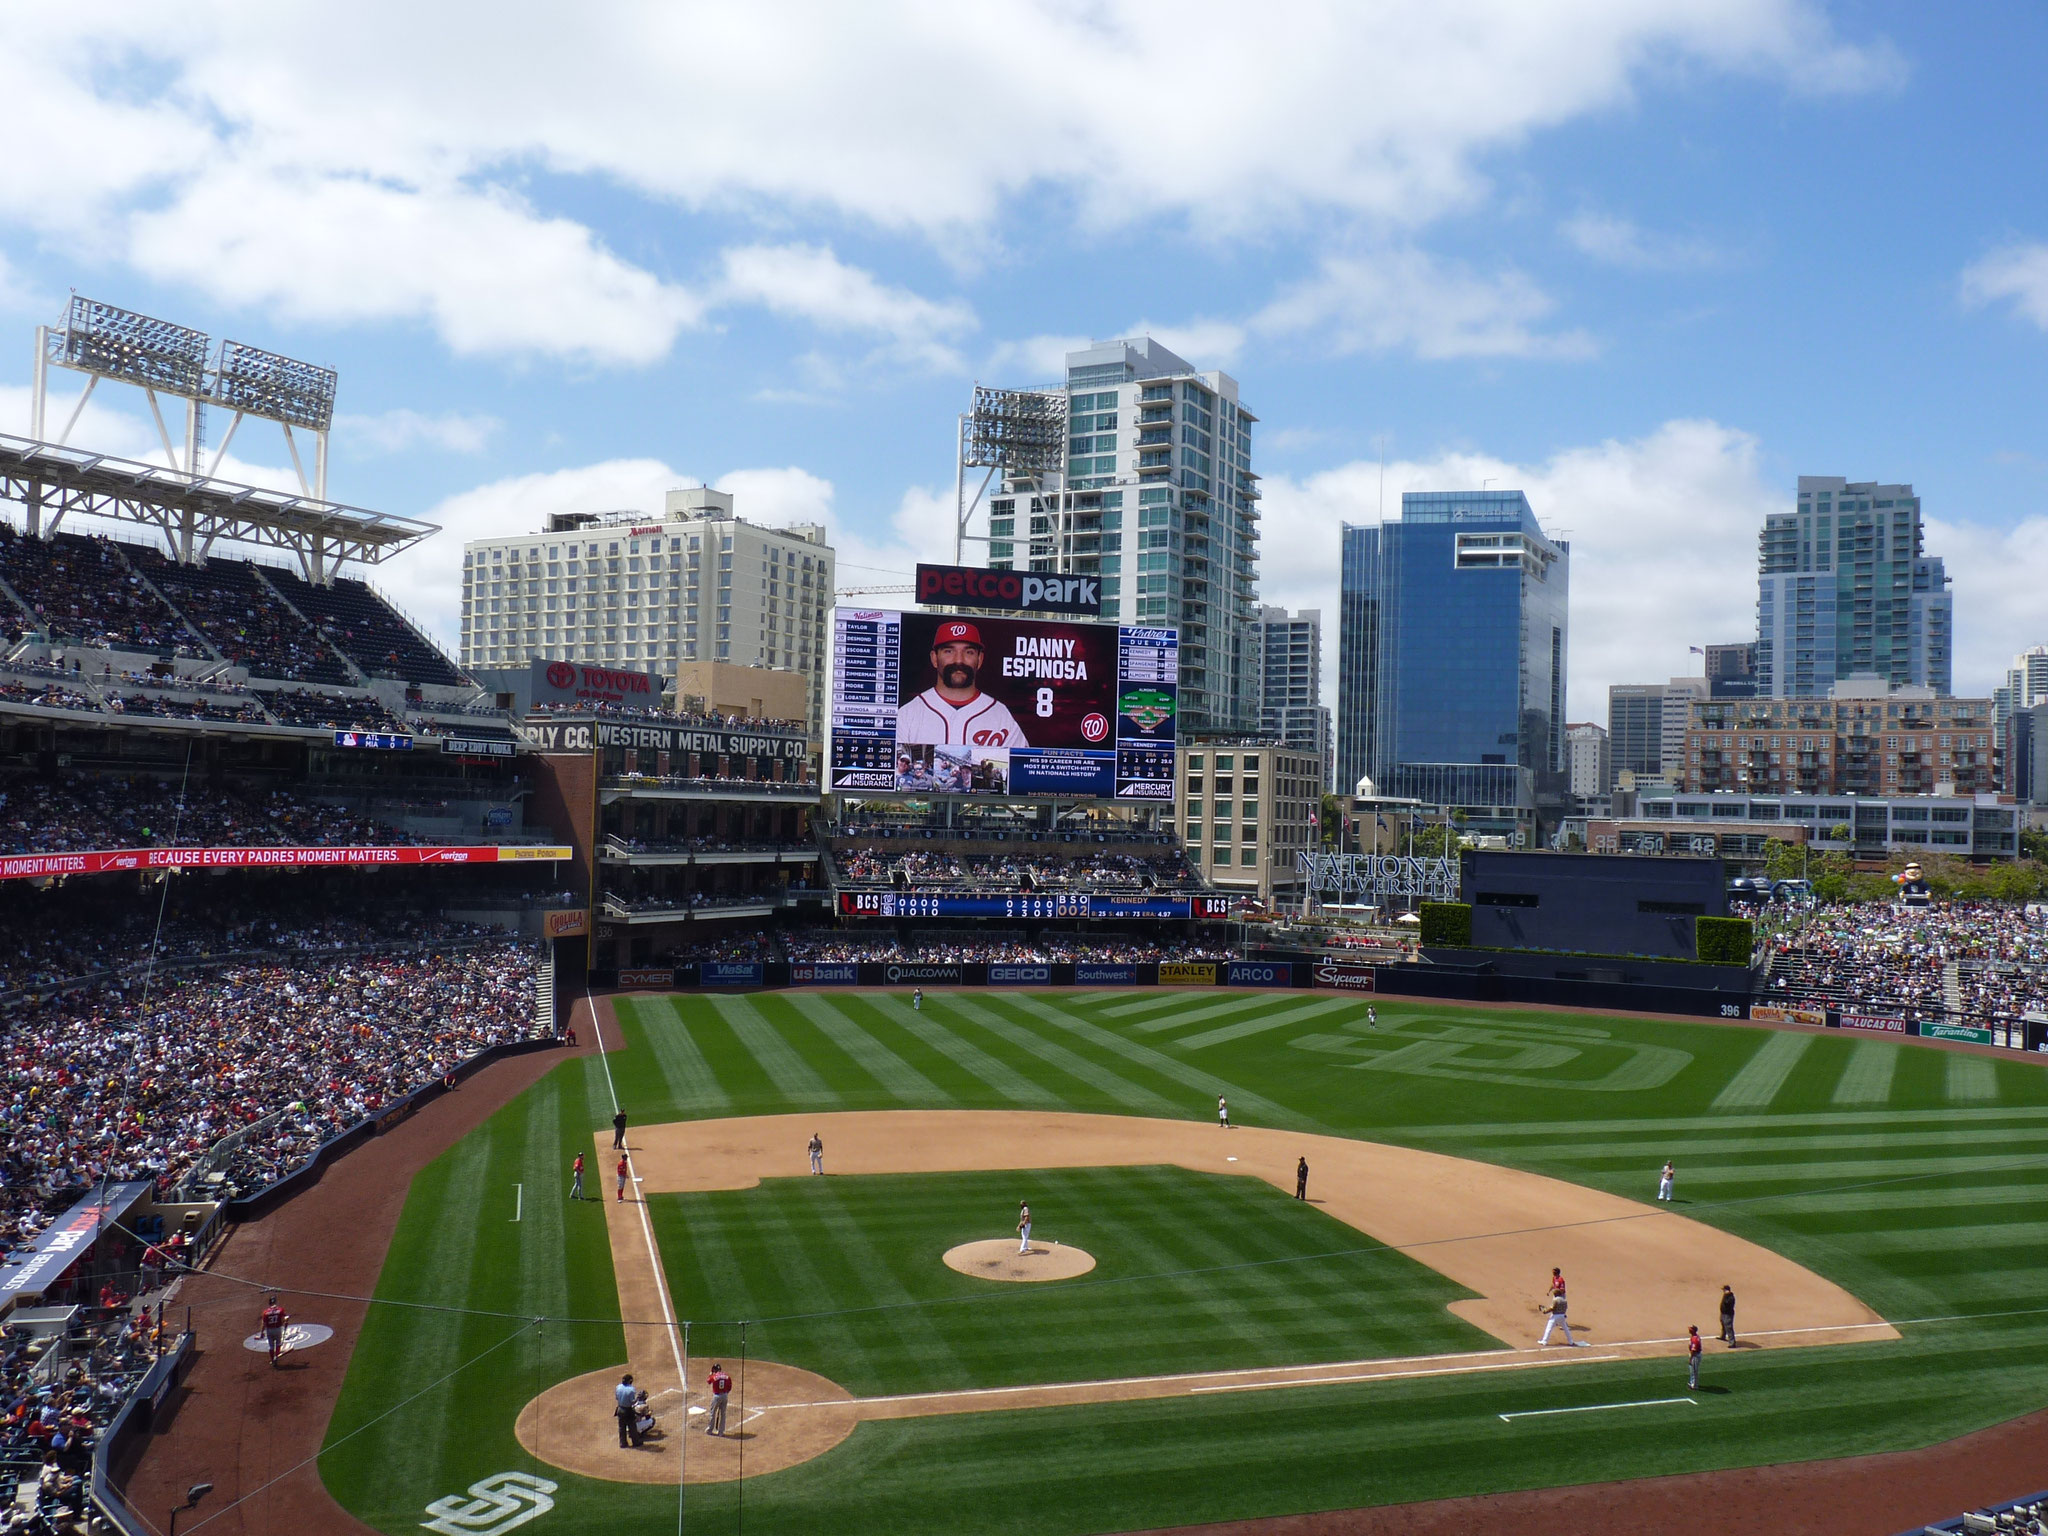 San Diego Padres vs Washington Nationals (2015-16)